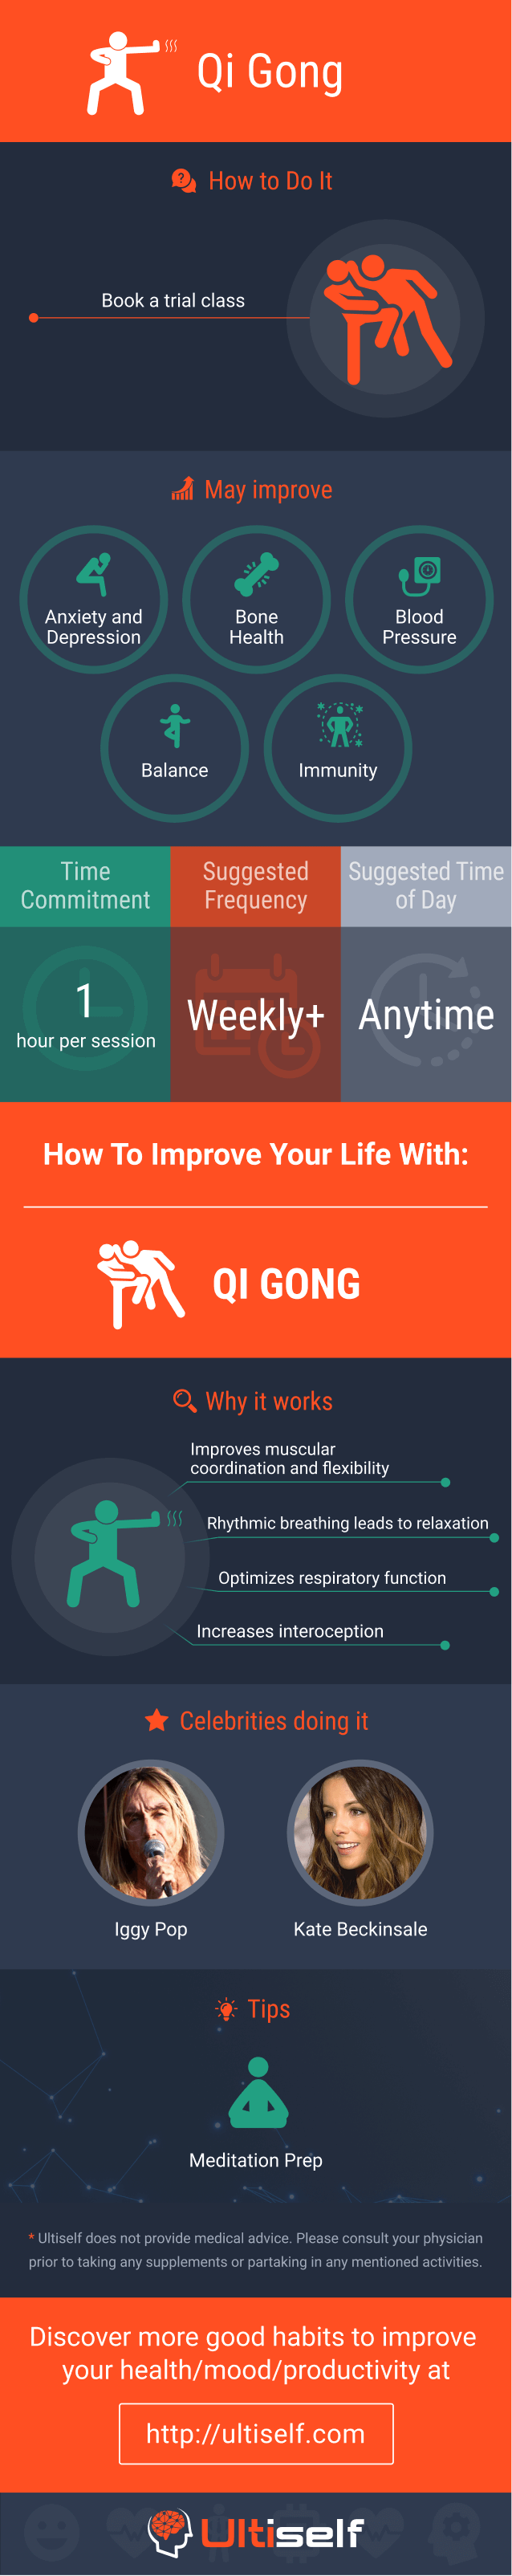 Qi Gong infographic